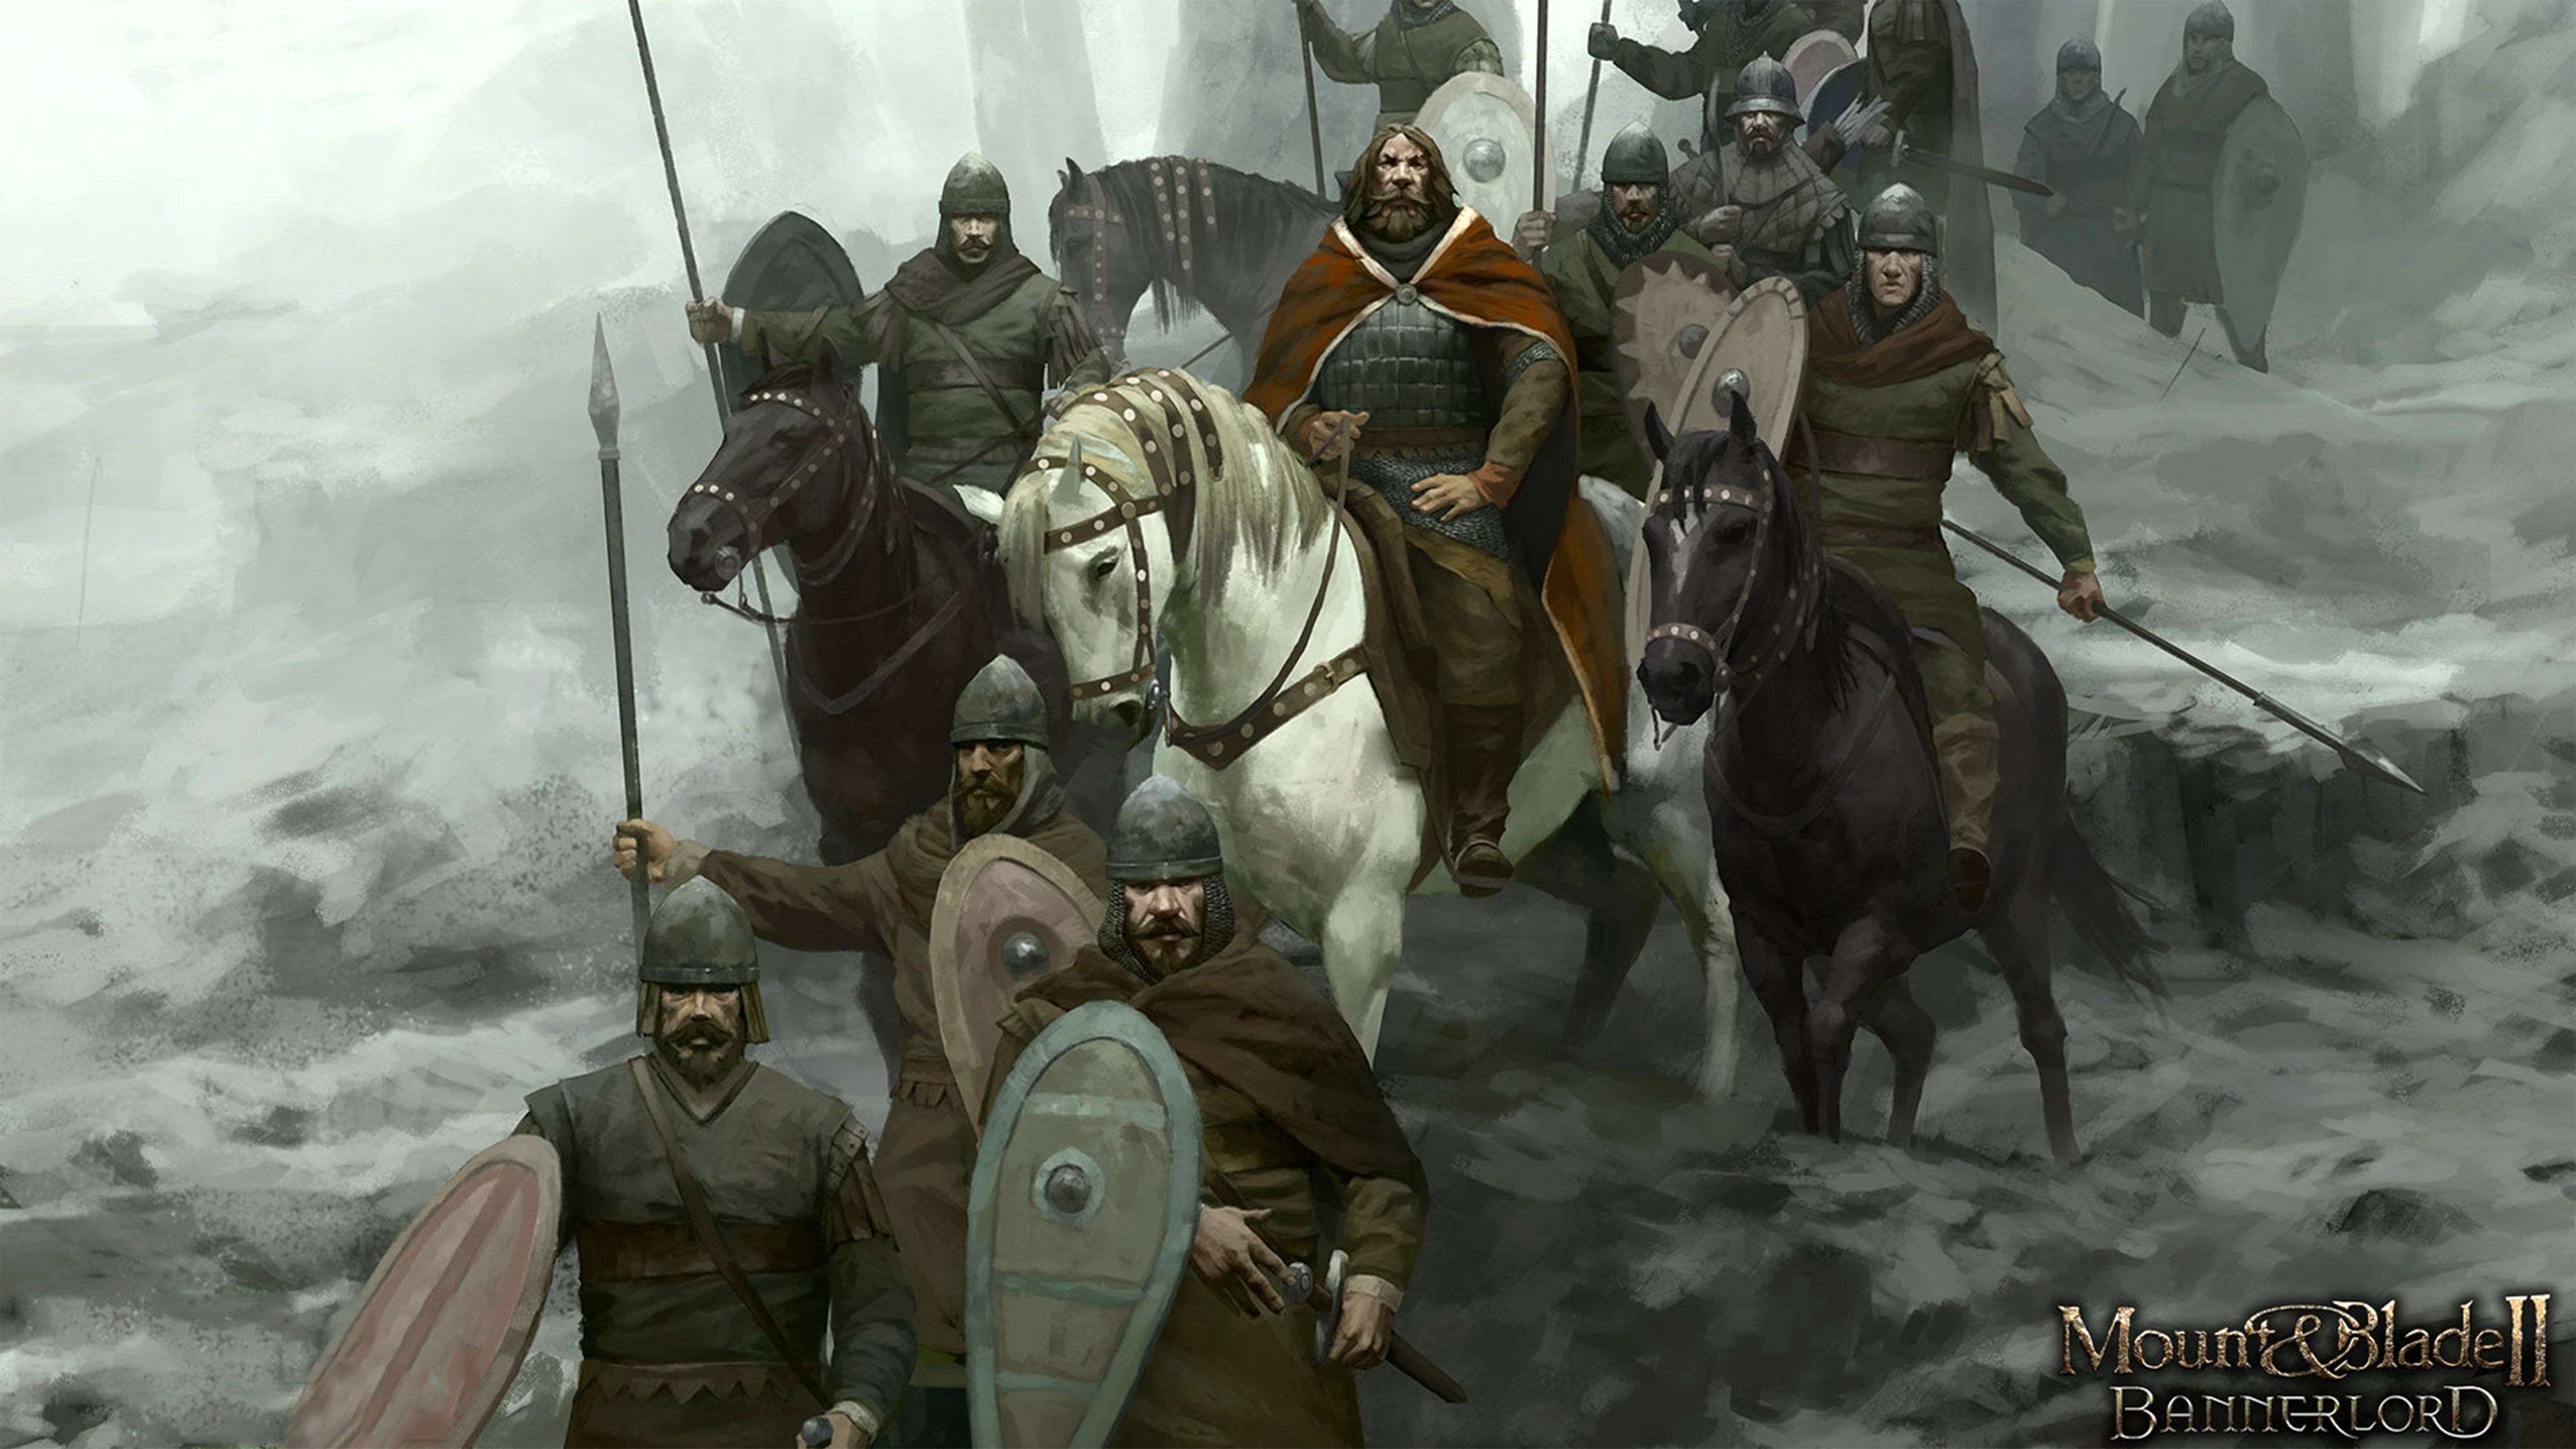 Mount and Blade Wallpapers - Top Free Mount and Blade Backgrounds -  WallpaperAccess